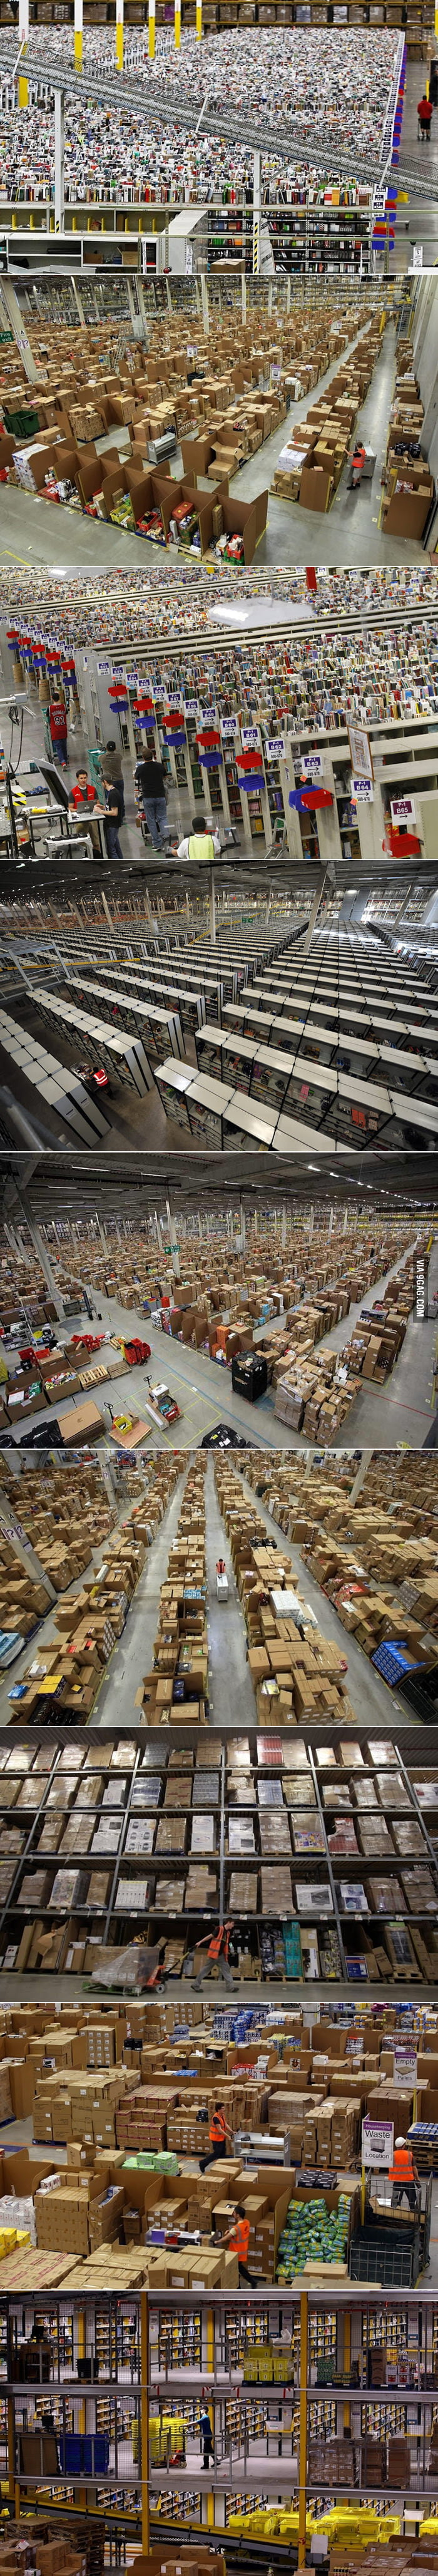 What it looks like inside Amazon.